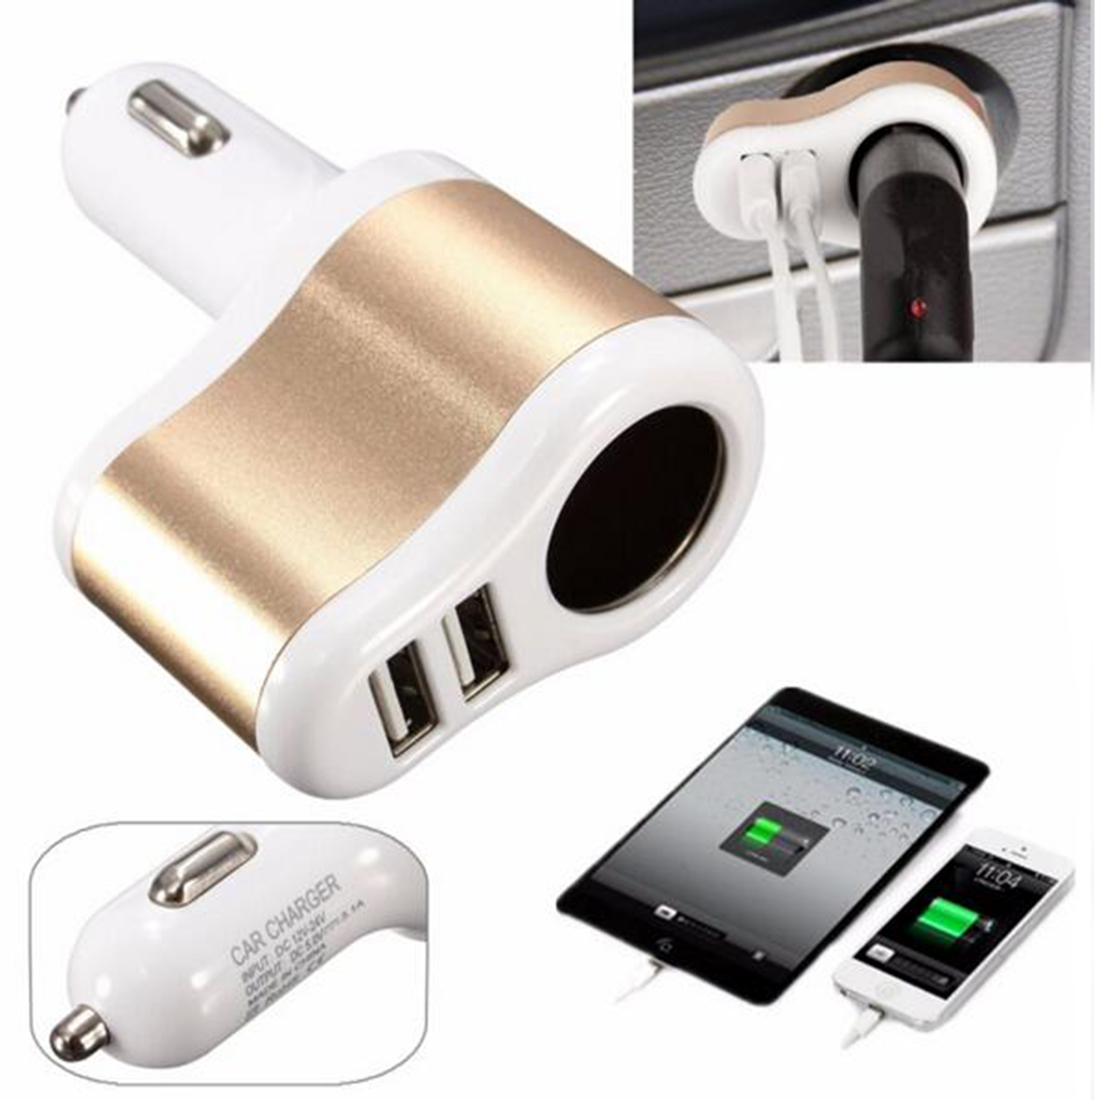 Marsnaska Universal Dual Ports Usb One Way Car Cigarette Lighter Power Socket Car Charger Adapter 5V